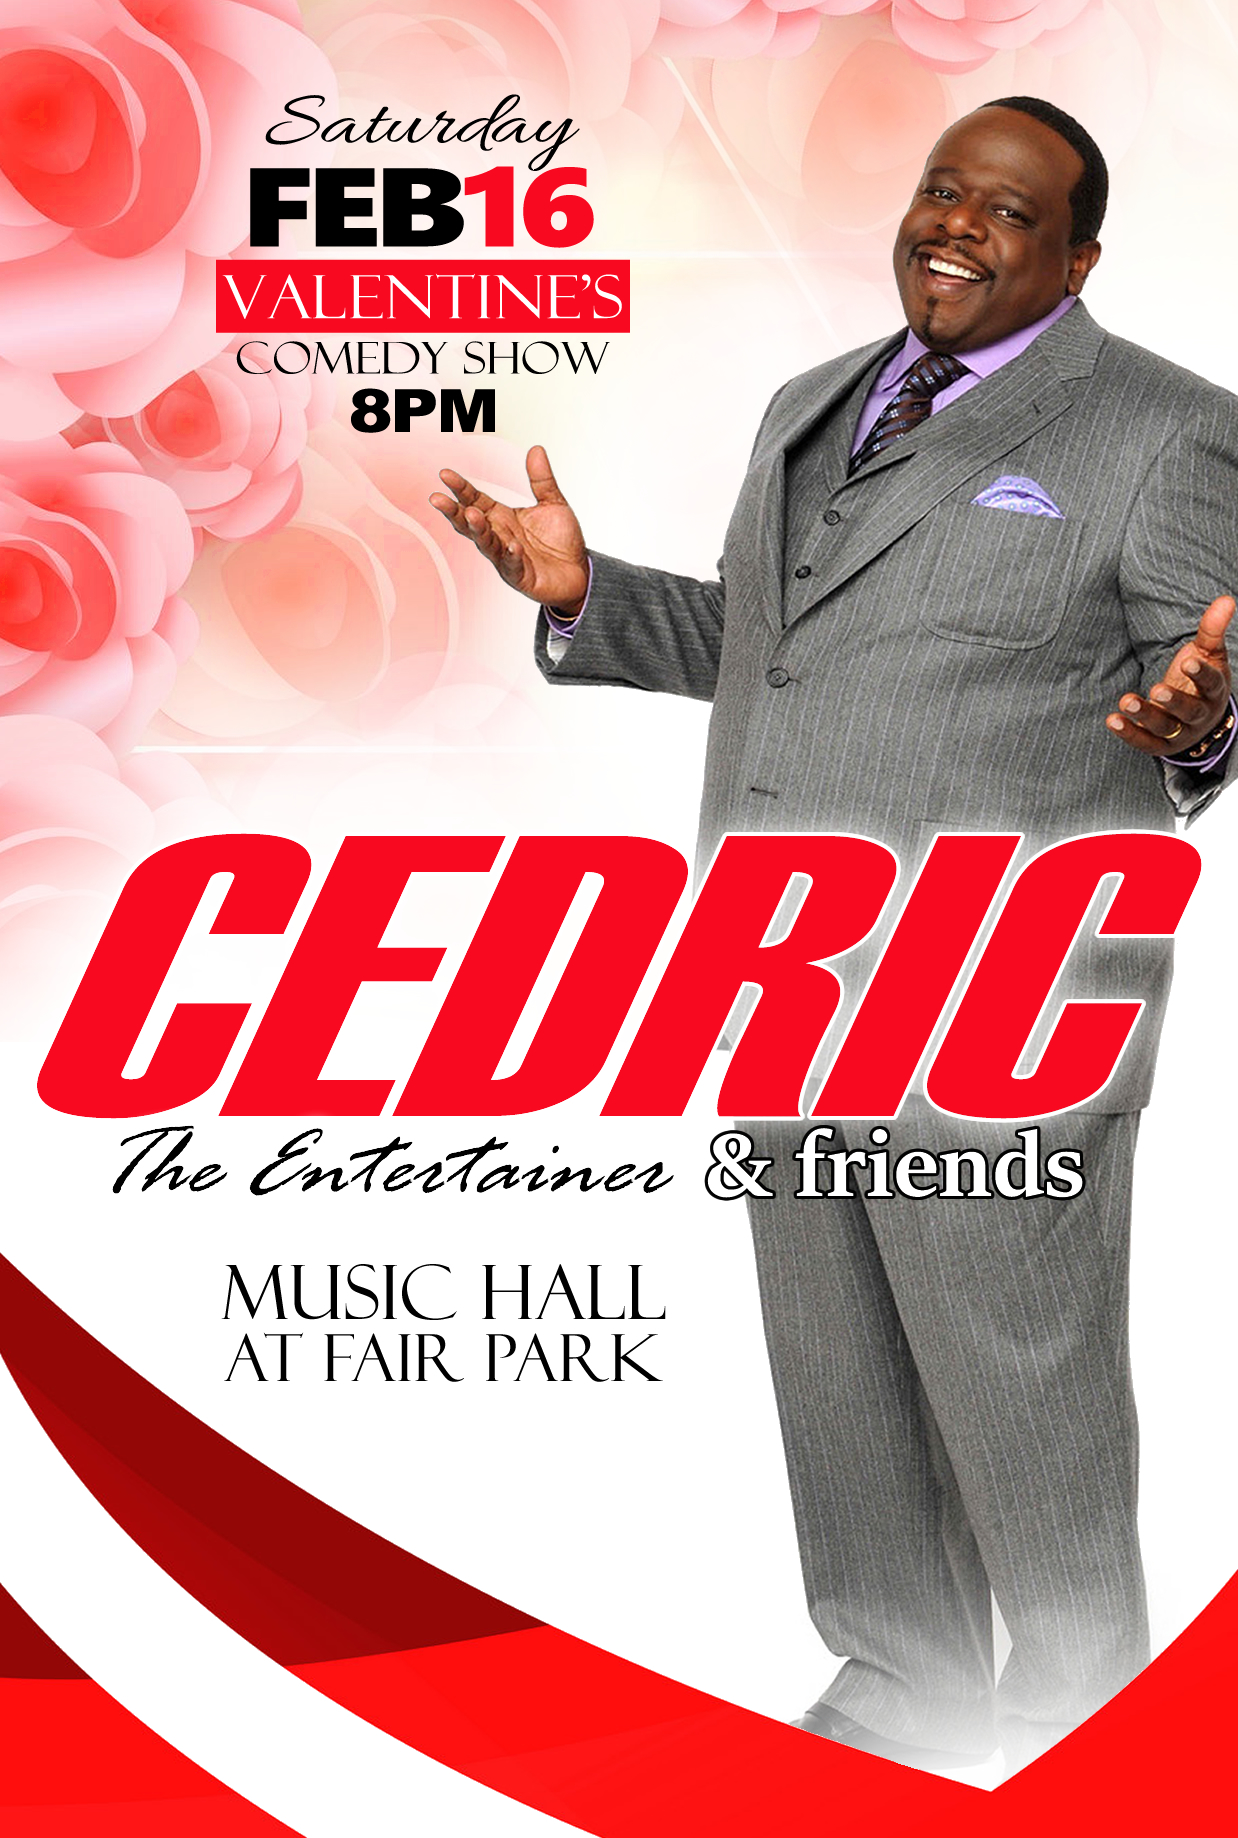 Cedric The Entertainment & Friends Live Valentine's Comedy Show-Feb. 16th